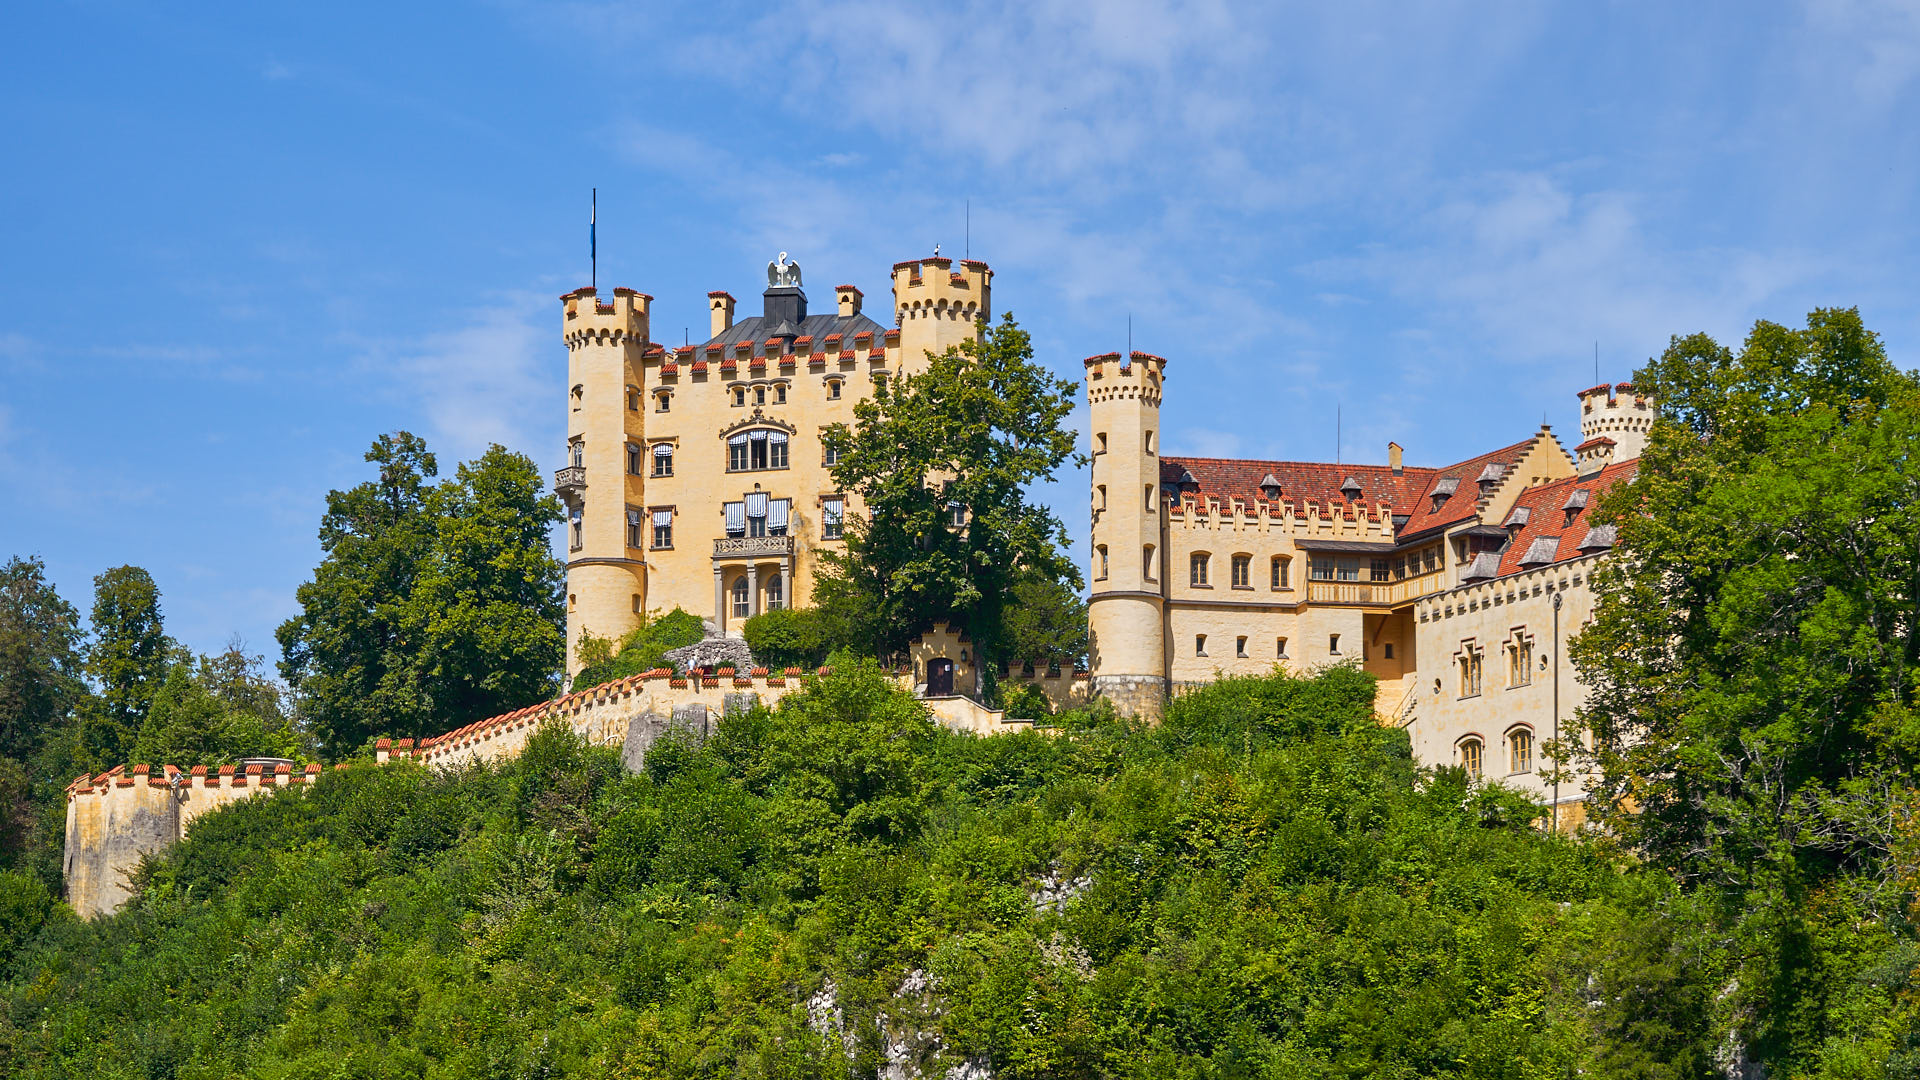 View of Hohenschwangau Castle from the town